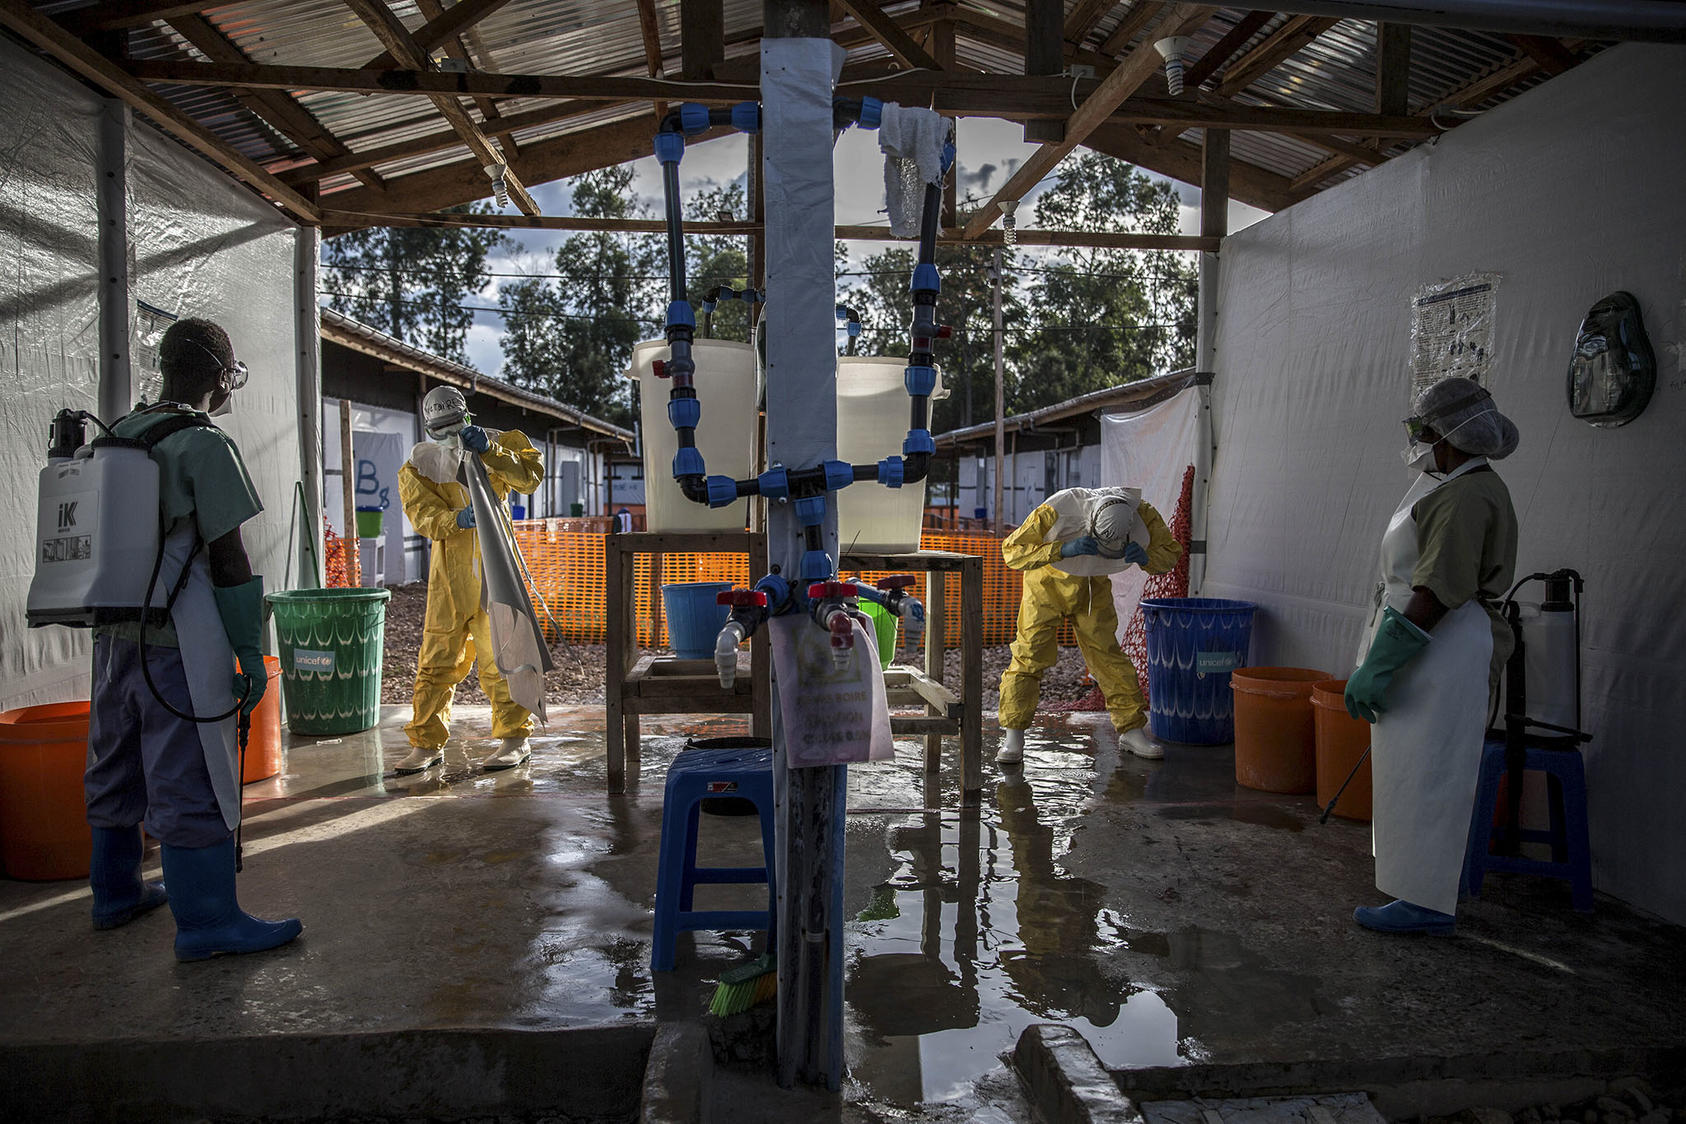 Ebola responders go through decontamination at a treatment center in Katwa, Congo, May 14, 2019. (Finbarr O'Reilly/The New York Times)